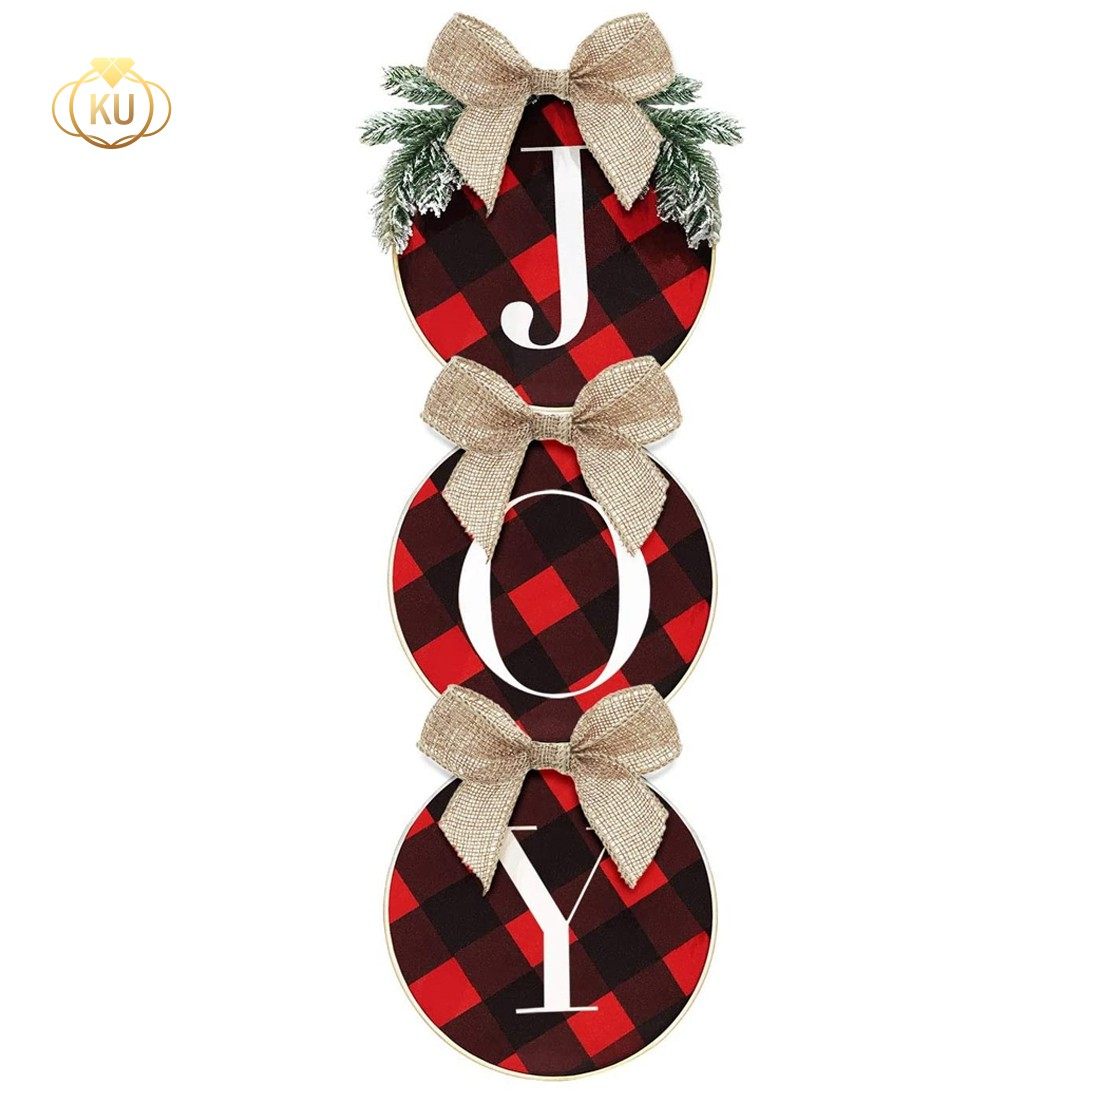 On Sale Christmas Decorations Joy Sign Buffalo Check Plaid Wreath For Front Door Home Window Wall Farmhouse Indoor Outdoor Shopee Philippines